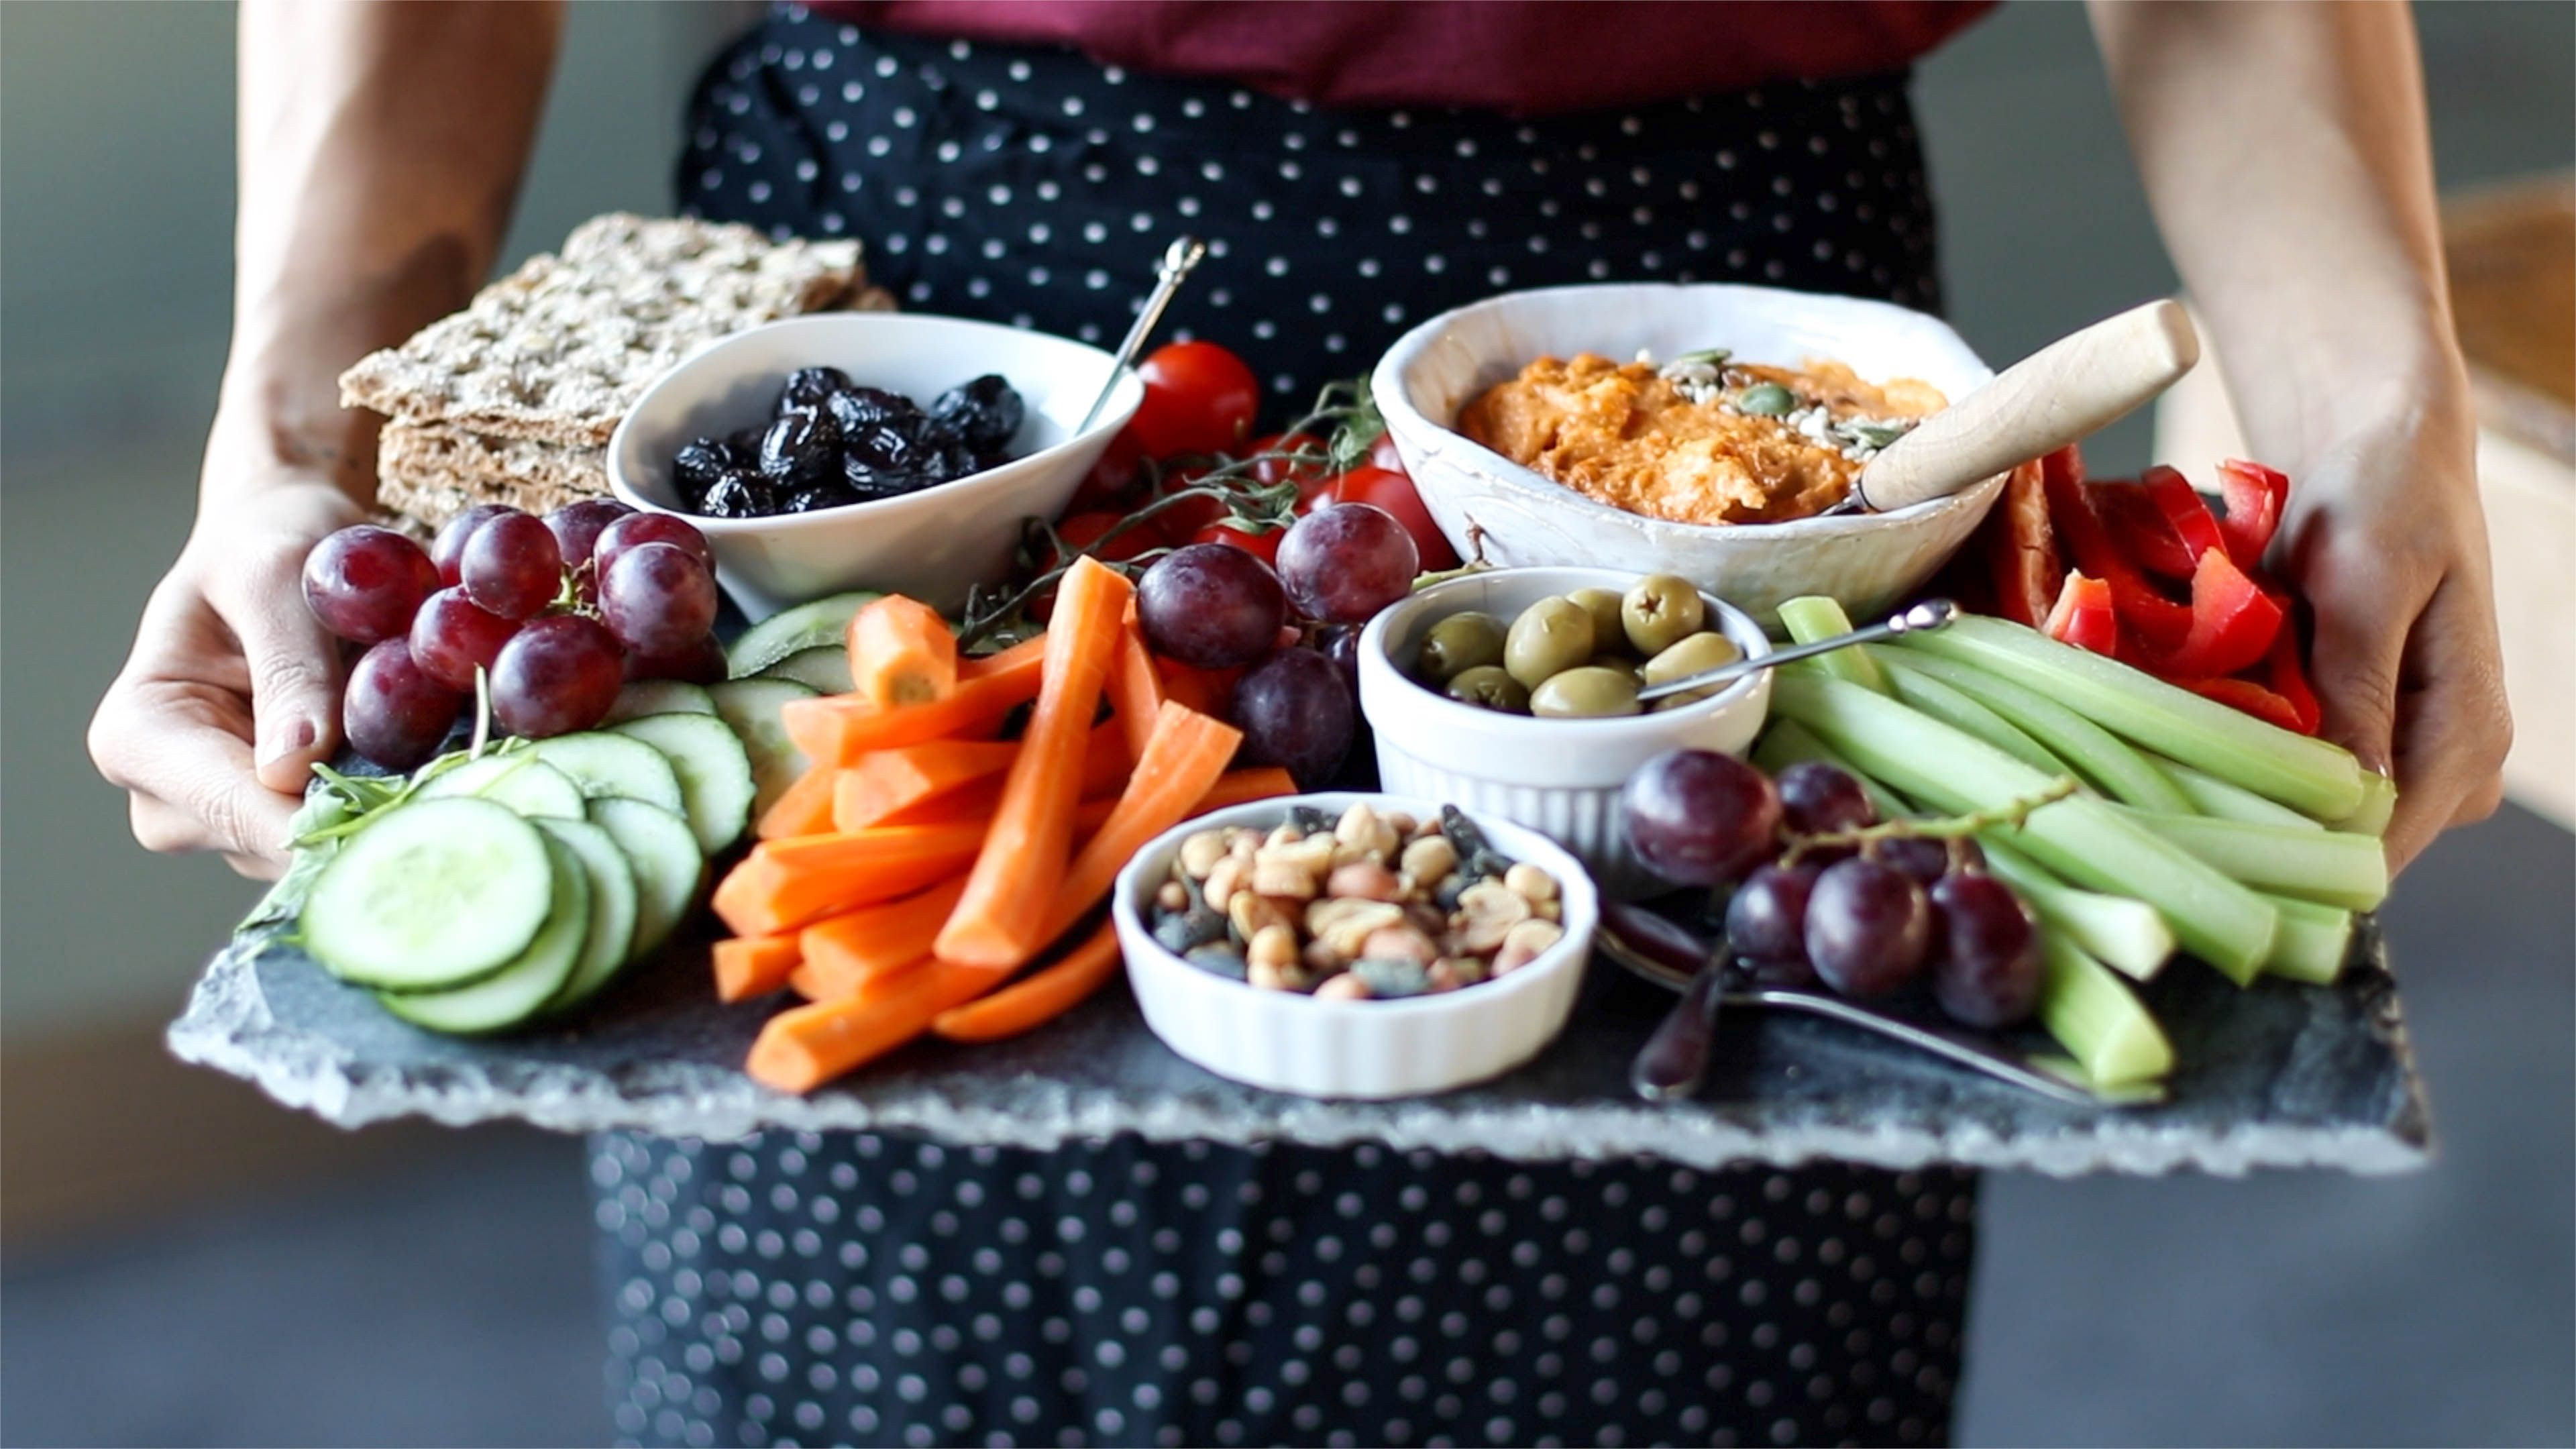 Watch The Videothe Article Making Healthy Food Choices Is